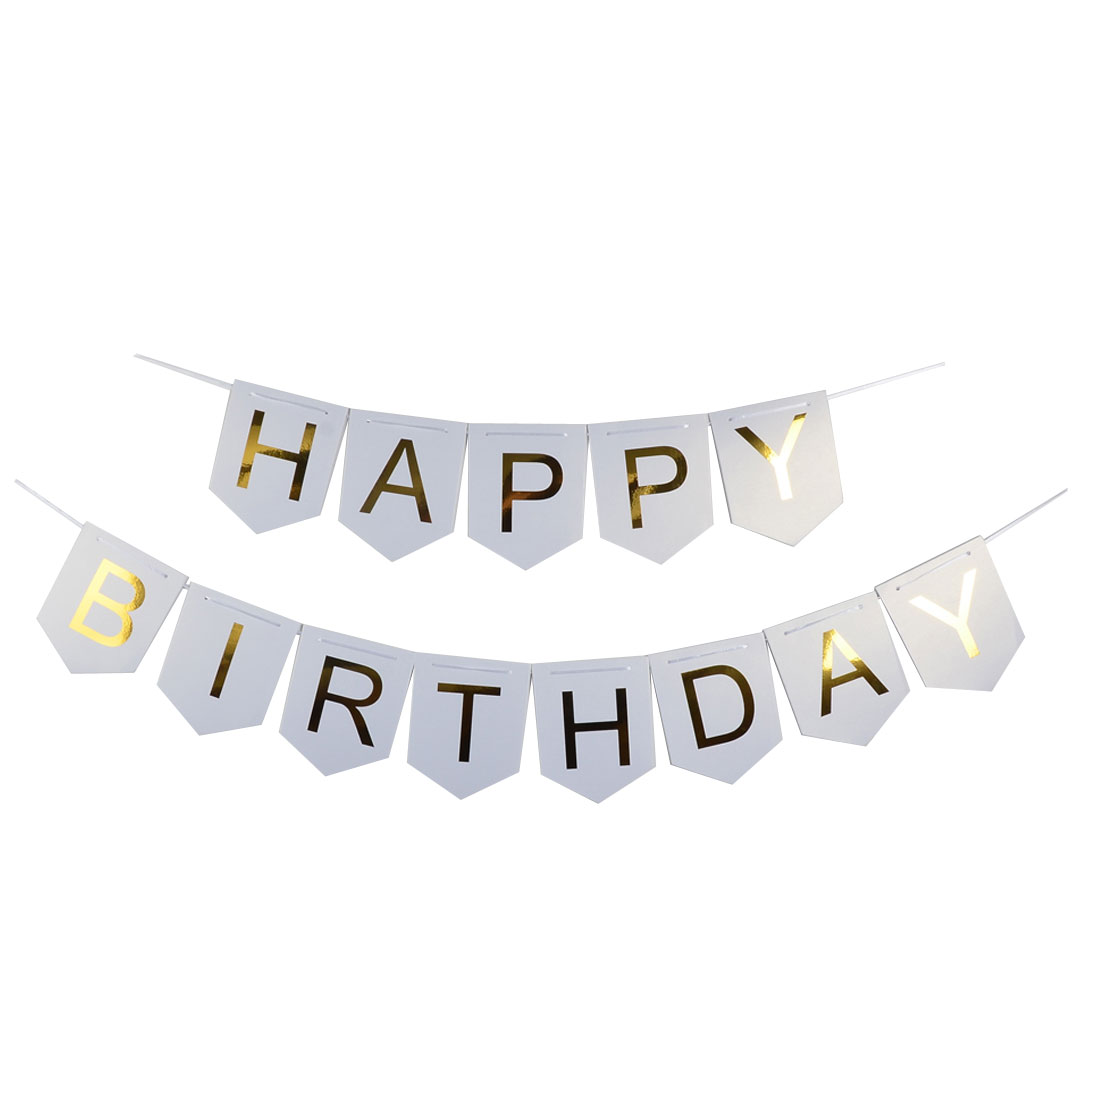 Paper HAPPY BIRTHDAY Letters Ornament Photo Prop Bunting Banner White Gold Tone